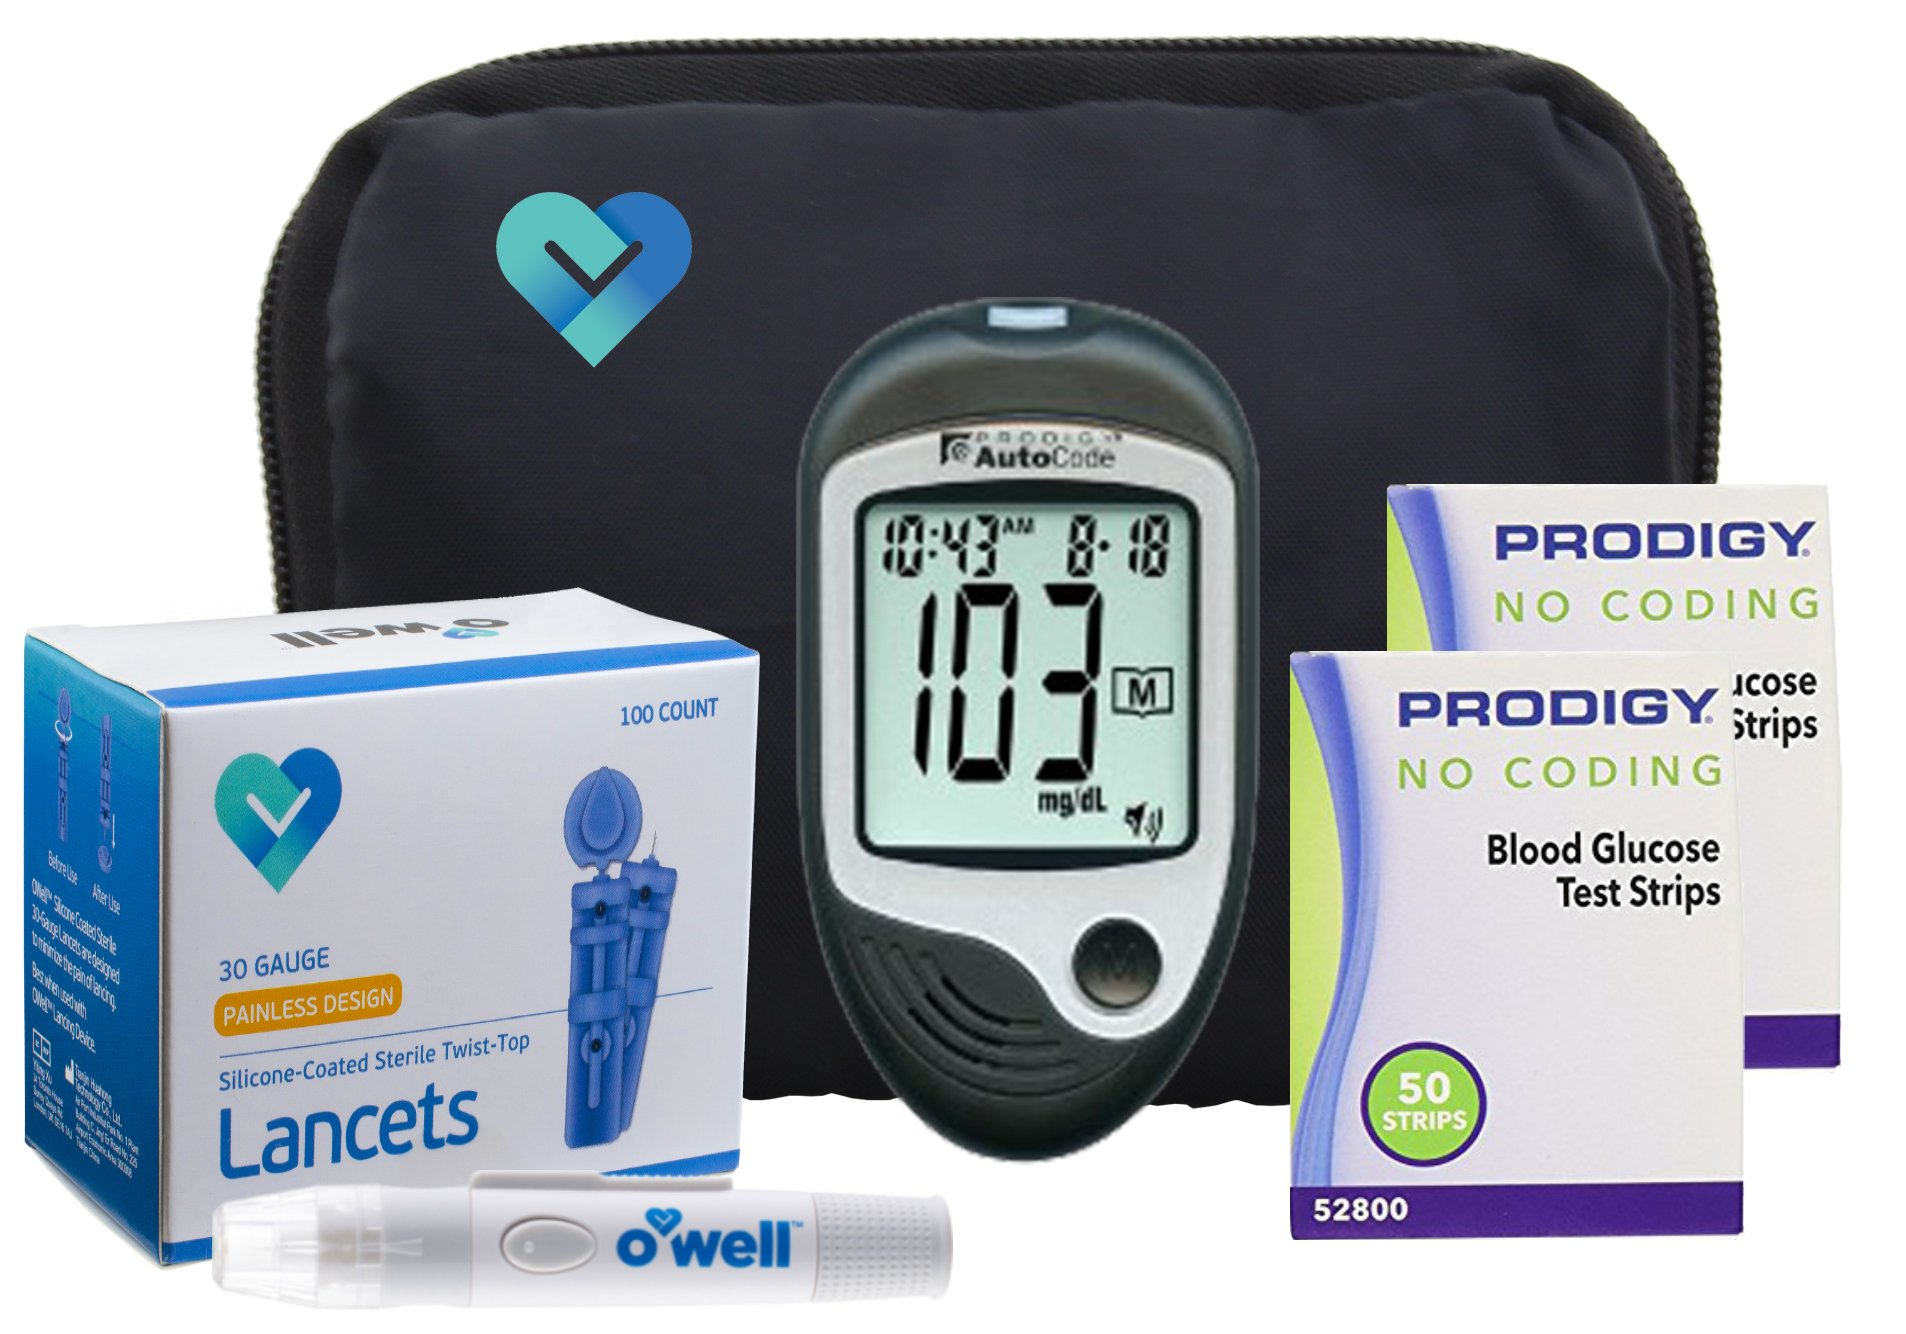 Prodigy Auto Code Diabetes Testing Kit, 100 Count | Prodigy TALKING Meter, 100 Prodigy Auto Code Test Strips, 100 Lancets, Lancing Device, Manuals, Log Book & Carry Case